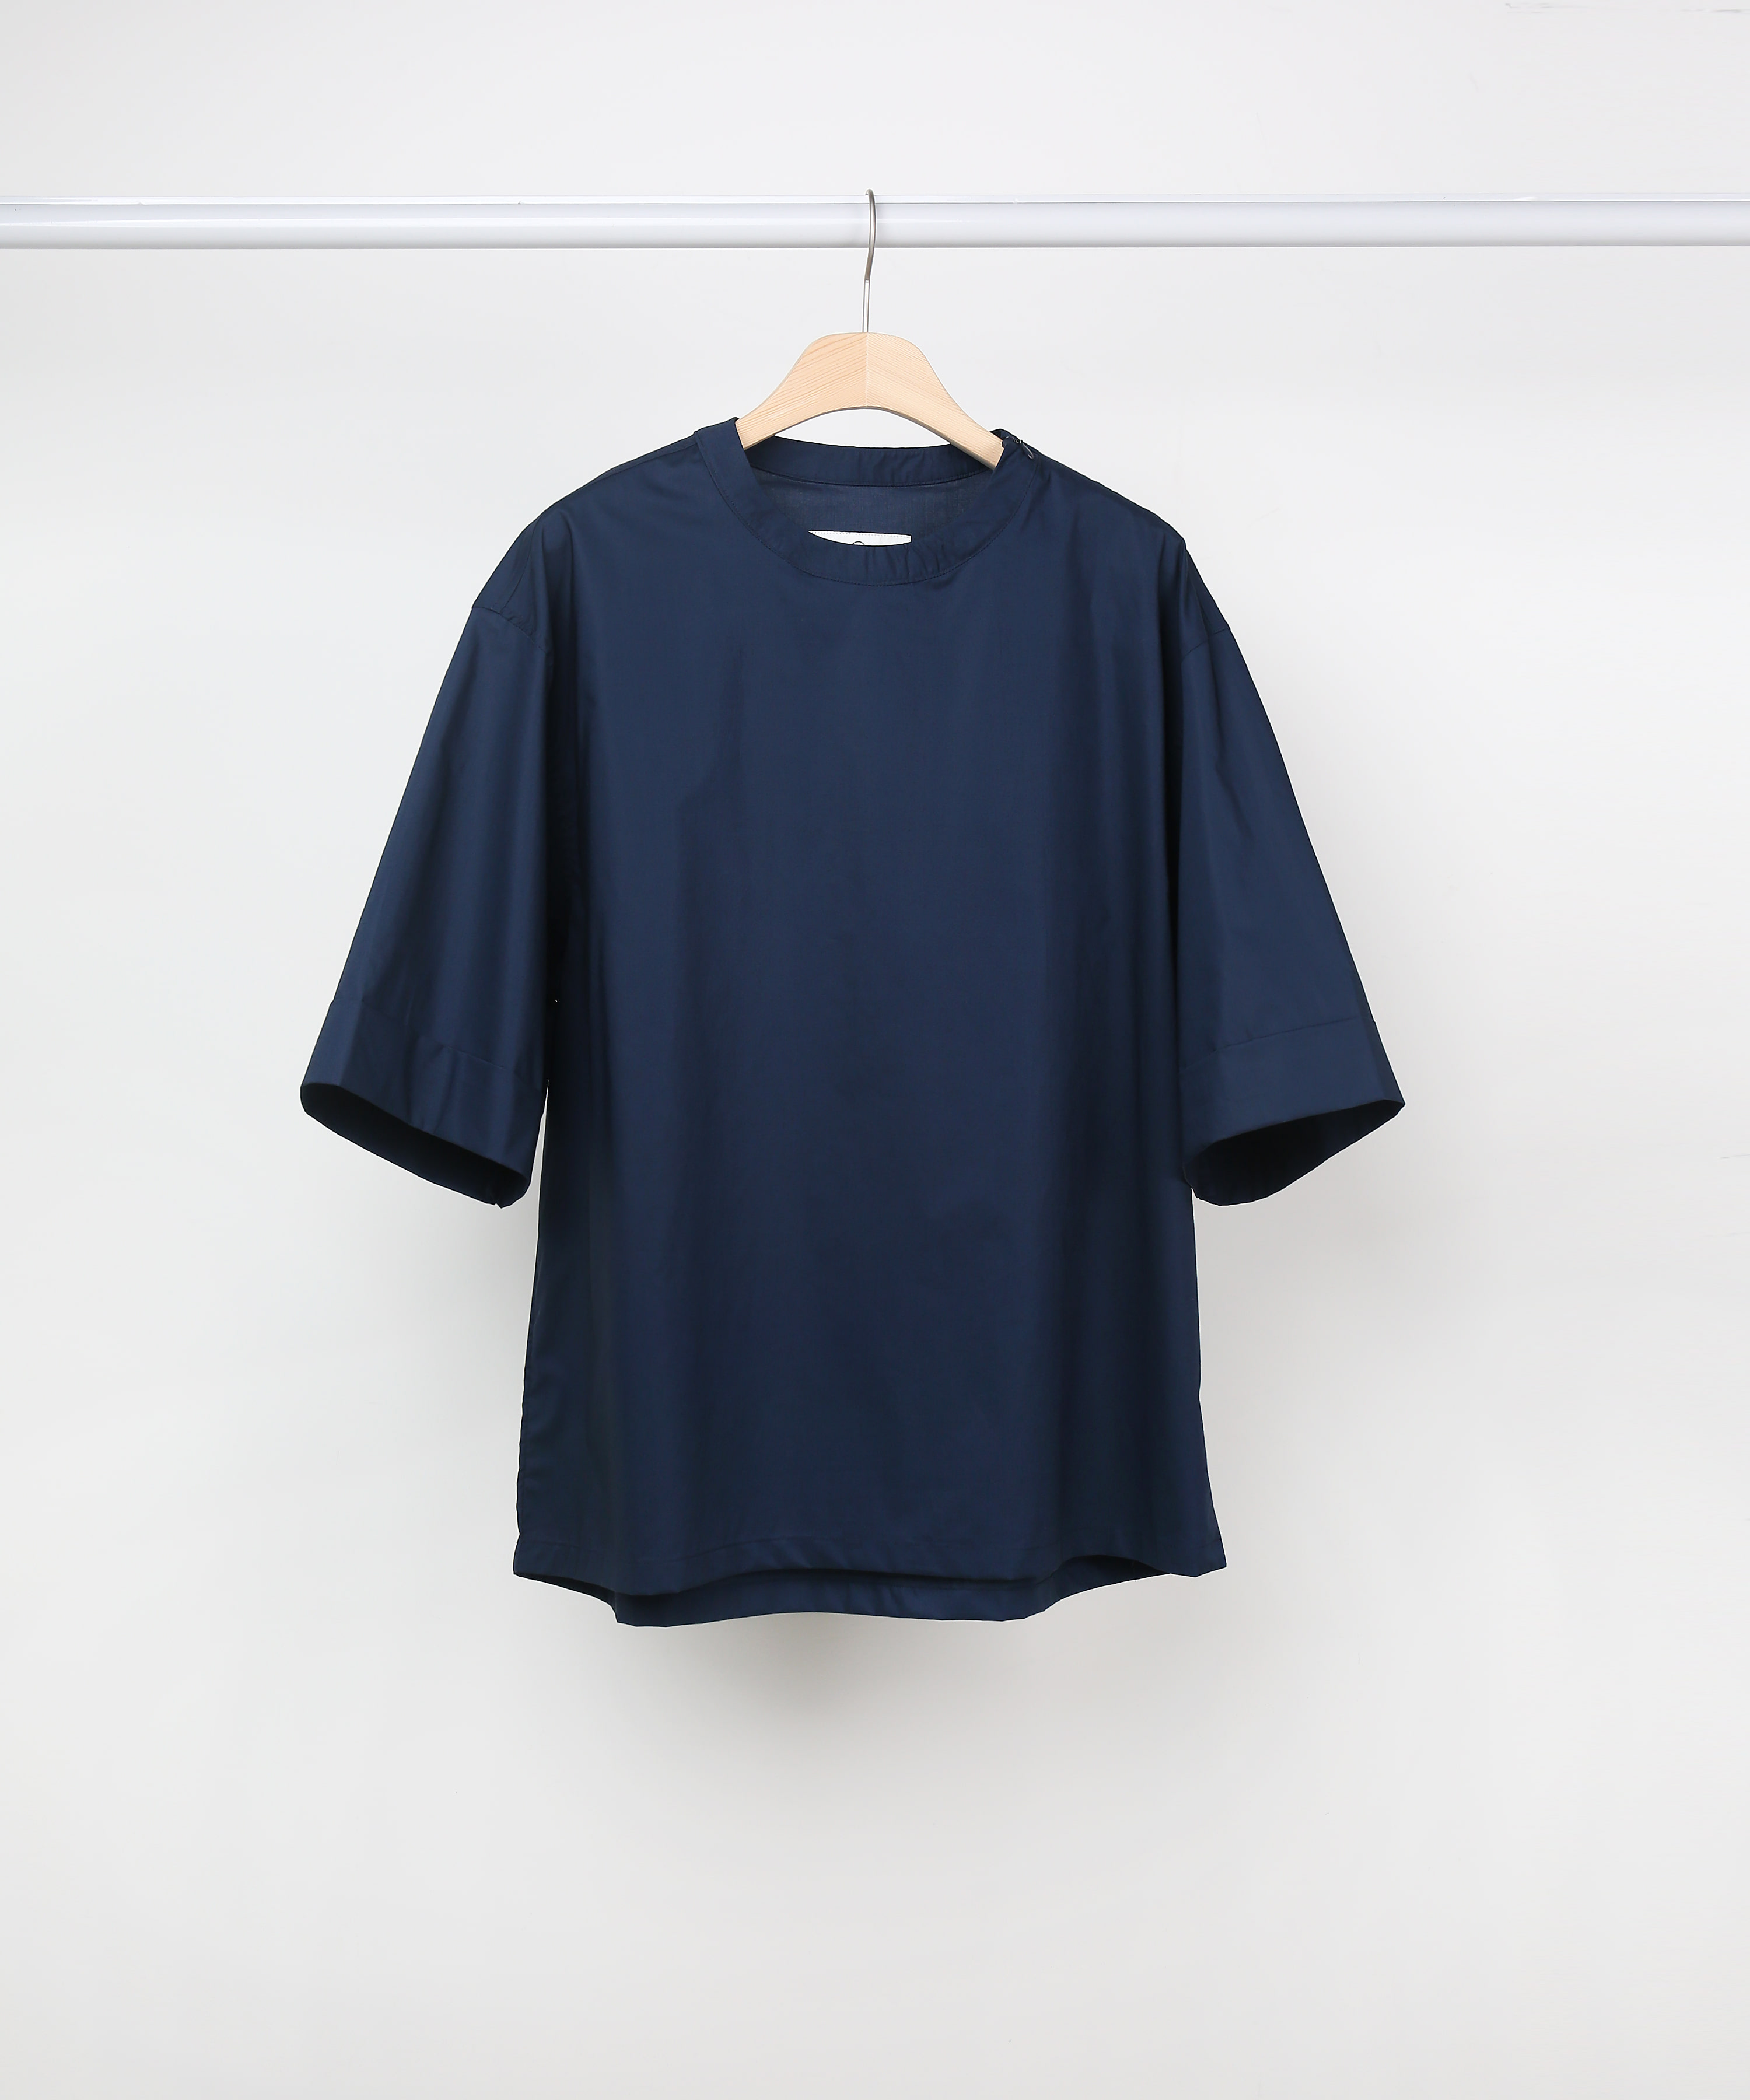 DARK NAVY HALF SLEEVE EASYGOING 04